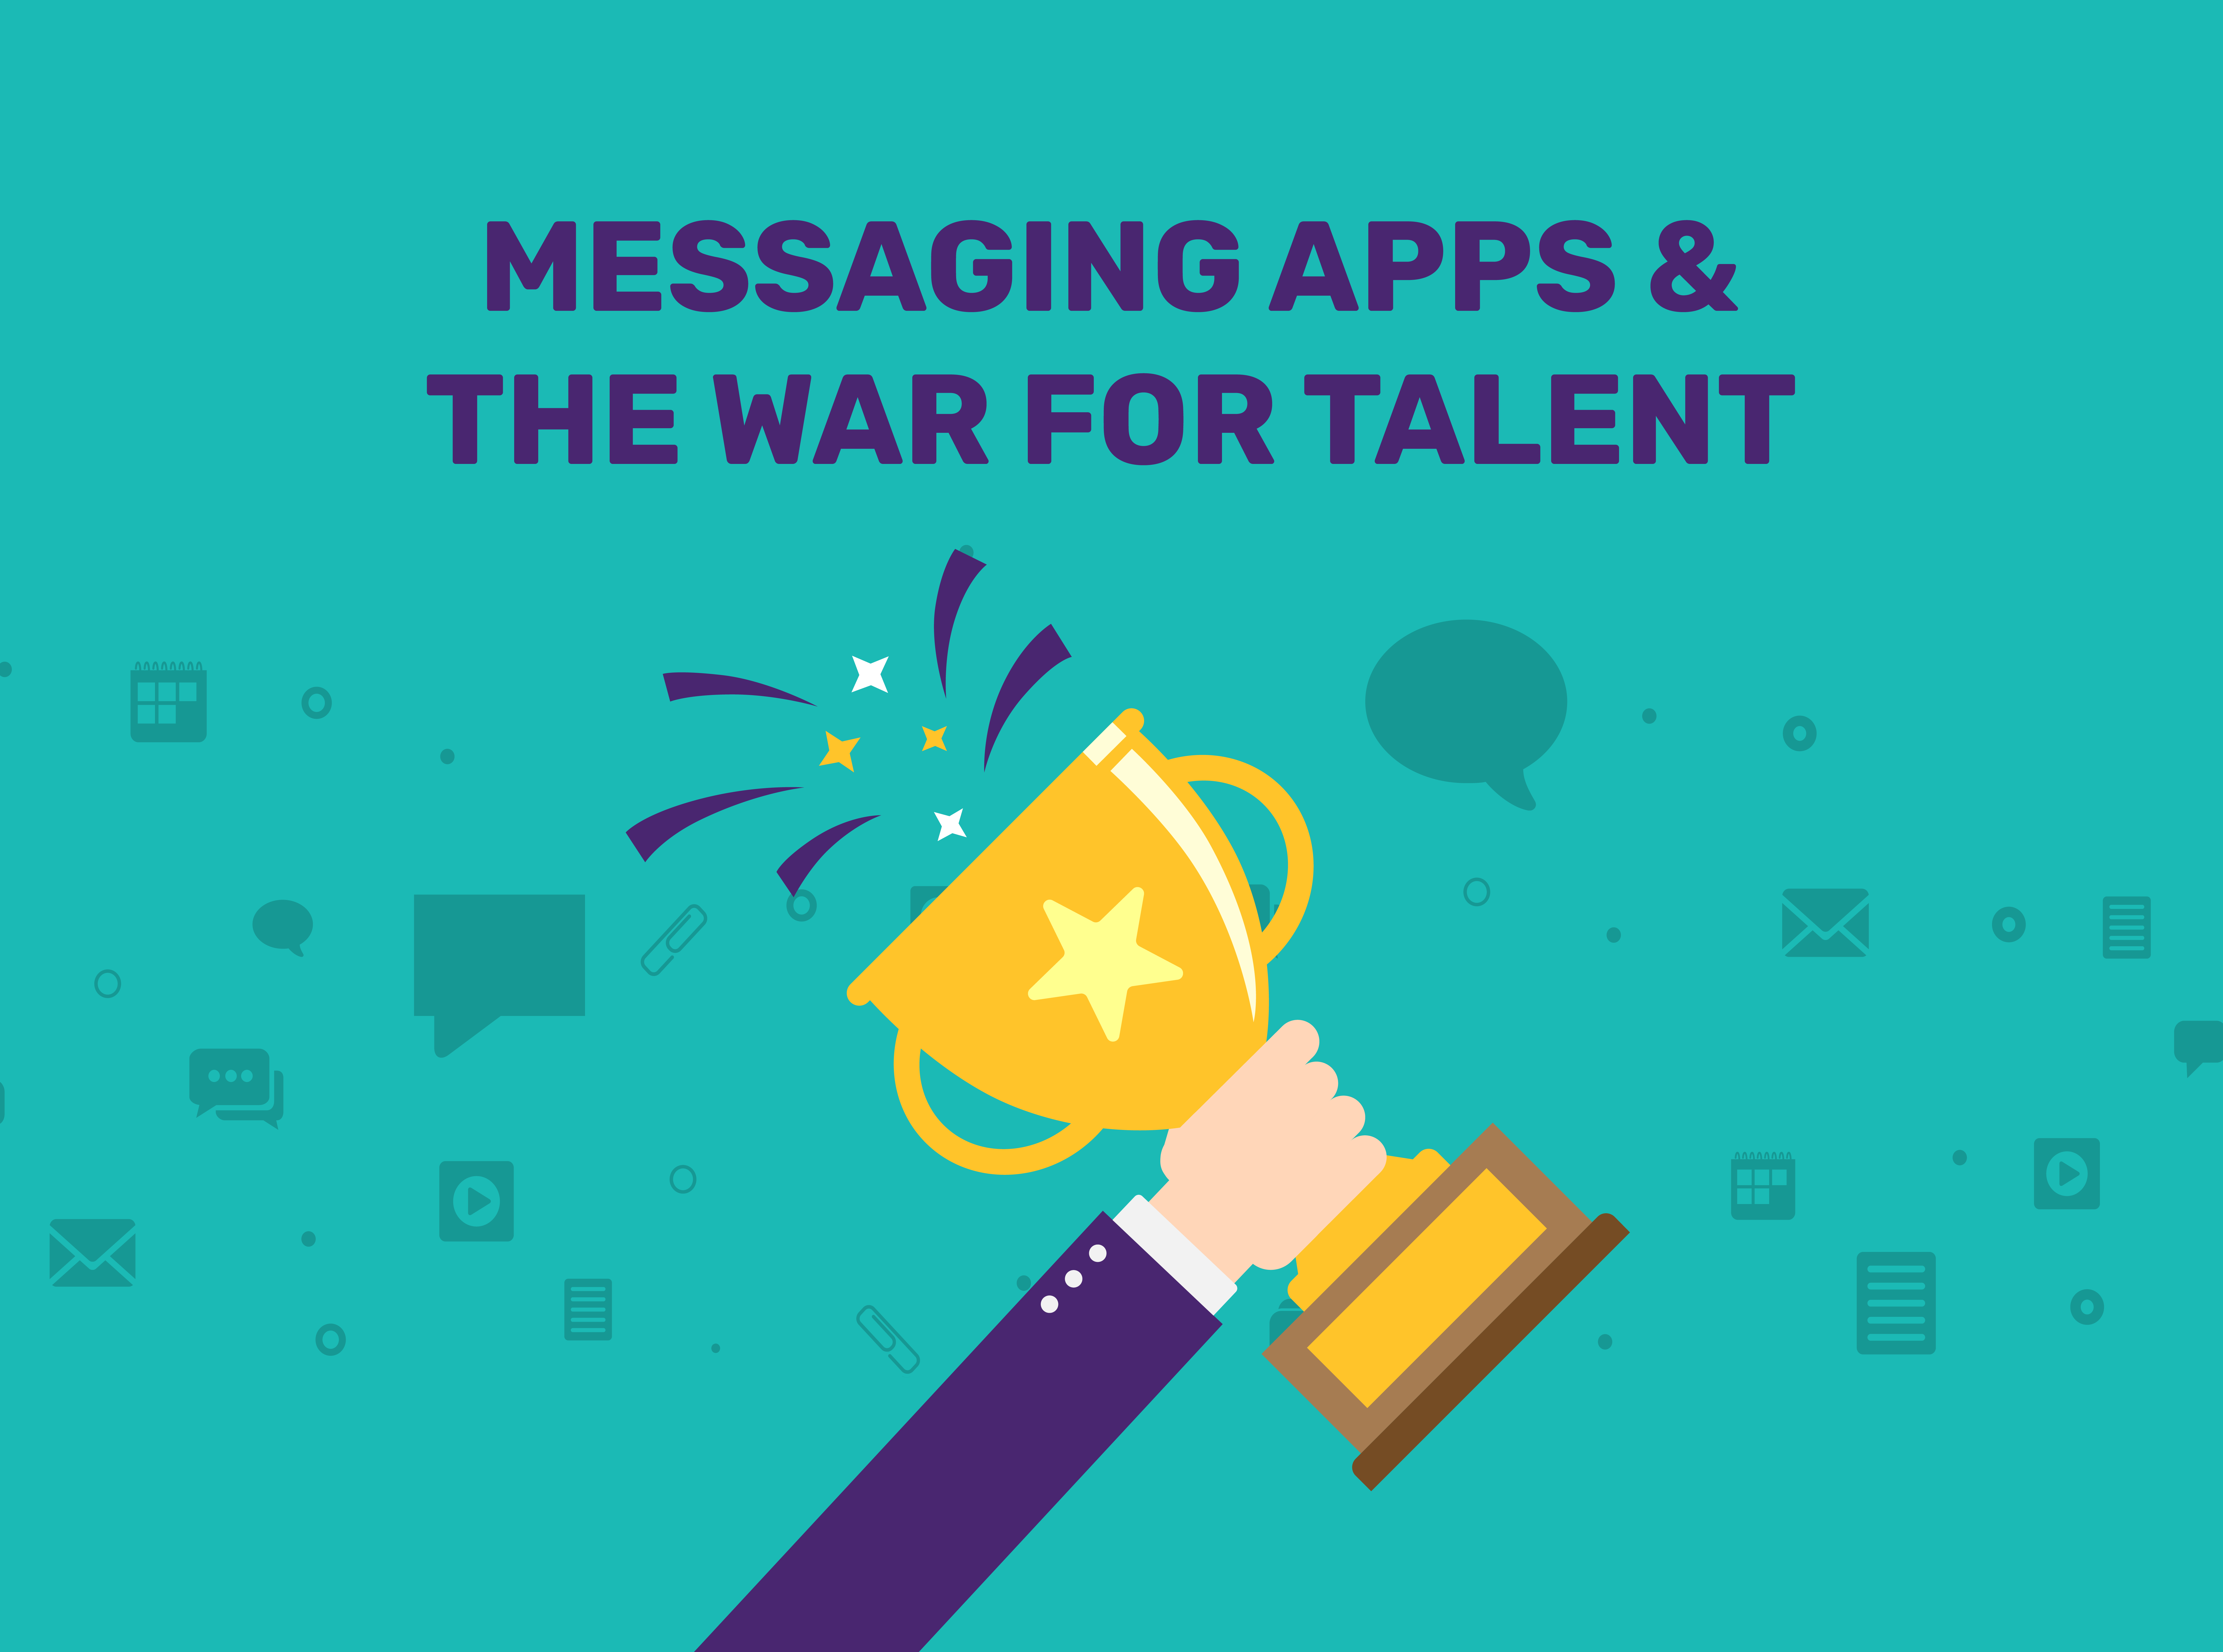 Messaging apps and the war for talent